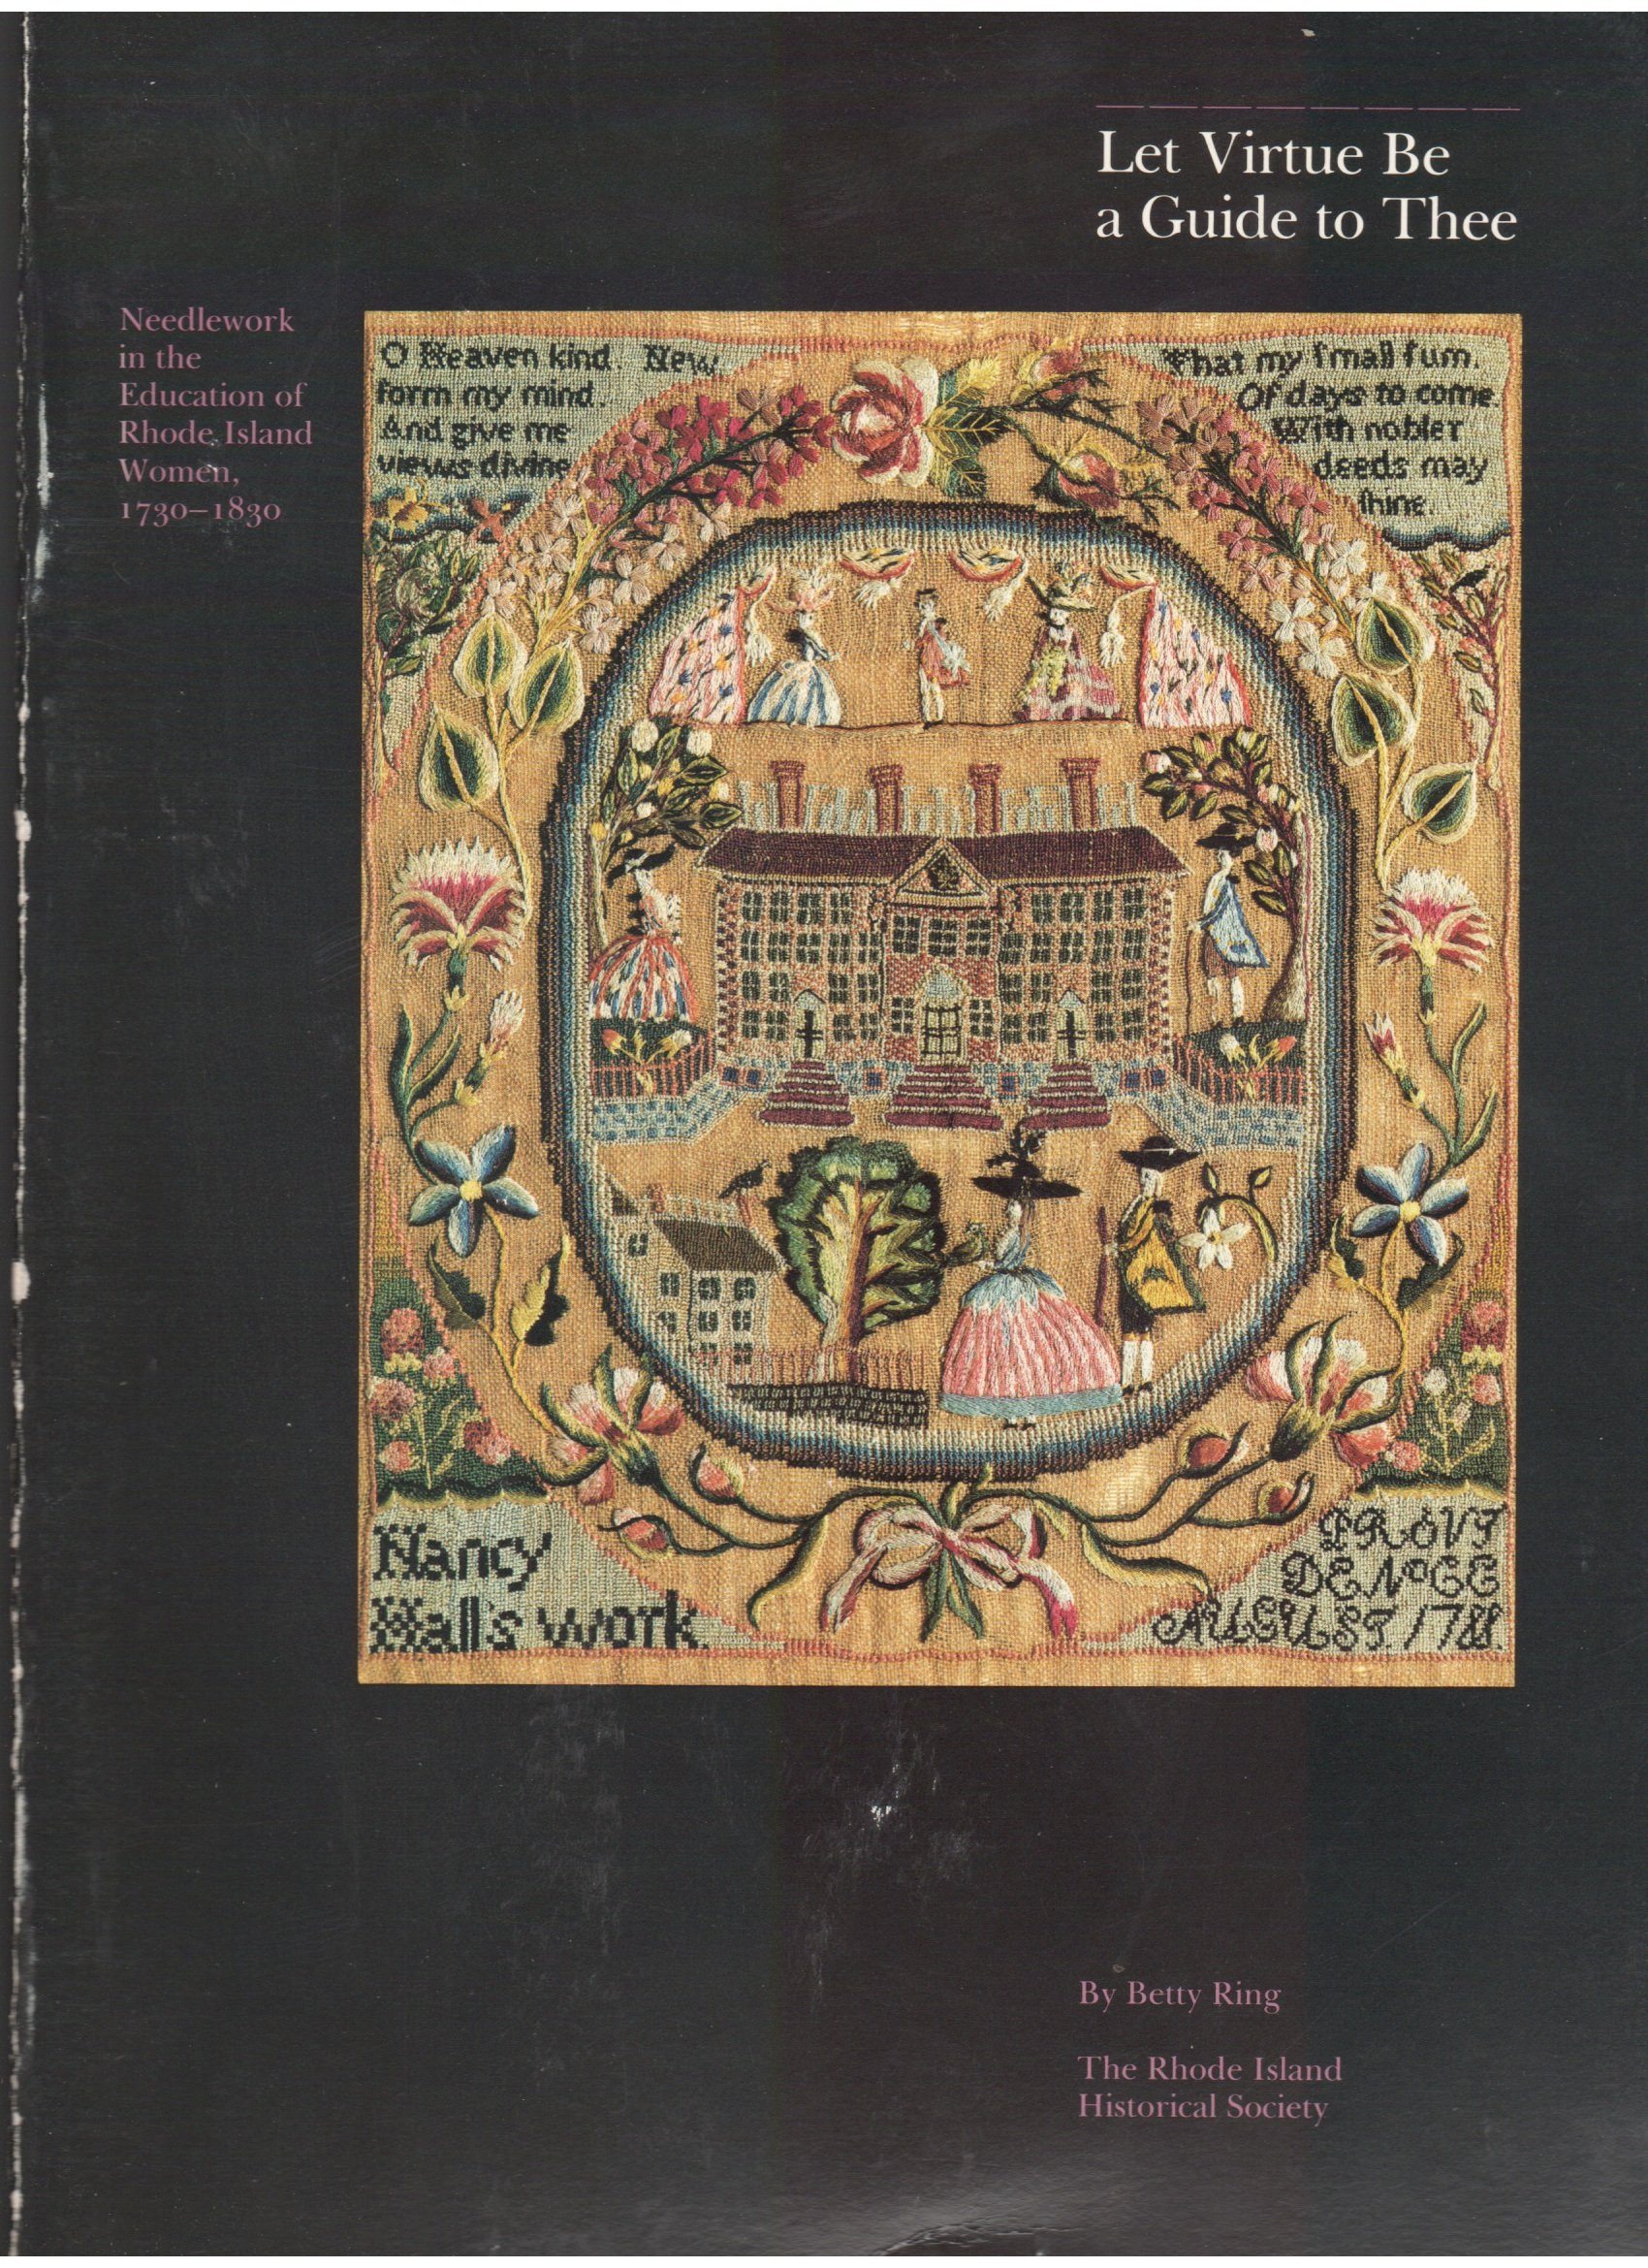 1984 Needlework in the Education of R.I Women